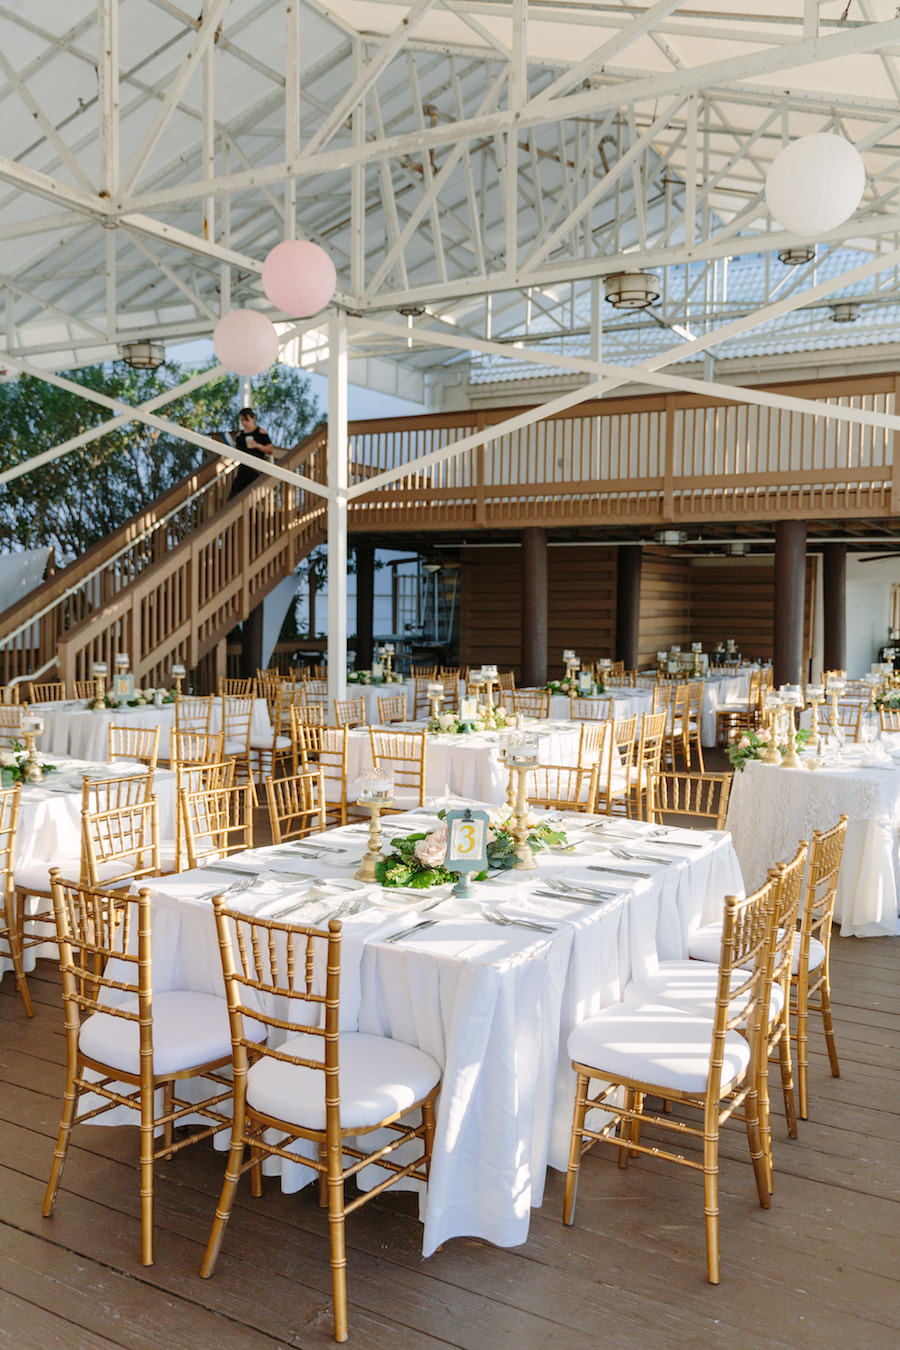 Outdoor Tented Wedding Reception with Gold and Ivory Centerpieces with Greenery and Chiavari Chairs   Clearwater Beach Wedding Venue Hilton Clearwater Beach